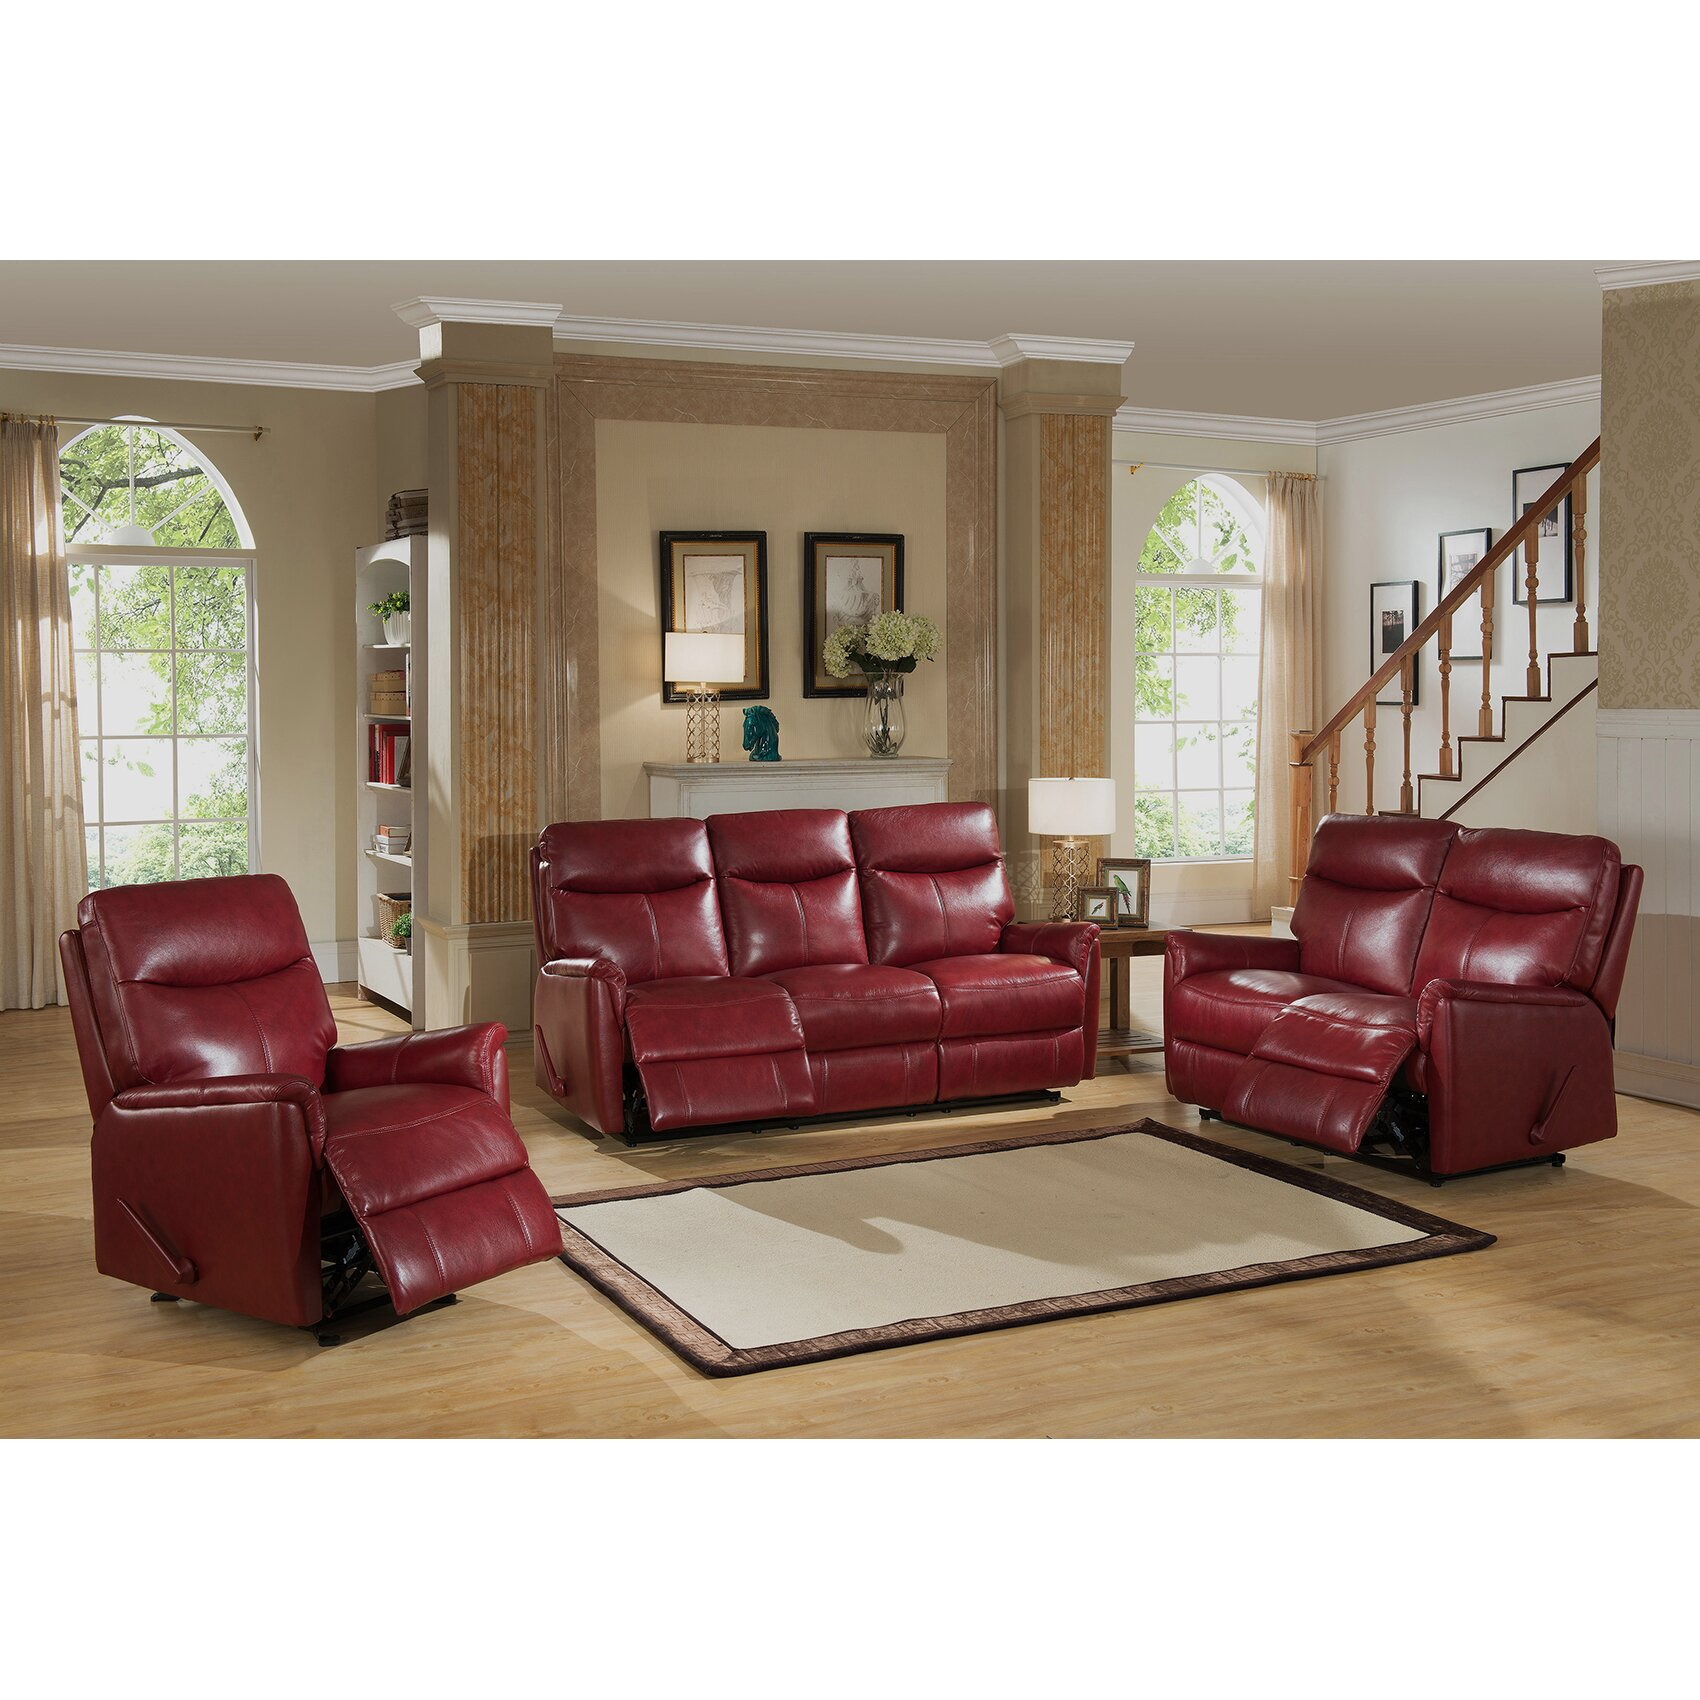 Three piece leather living room set modern house for Leather living room sets